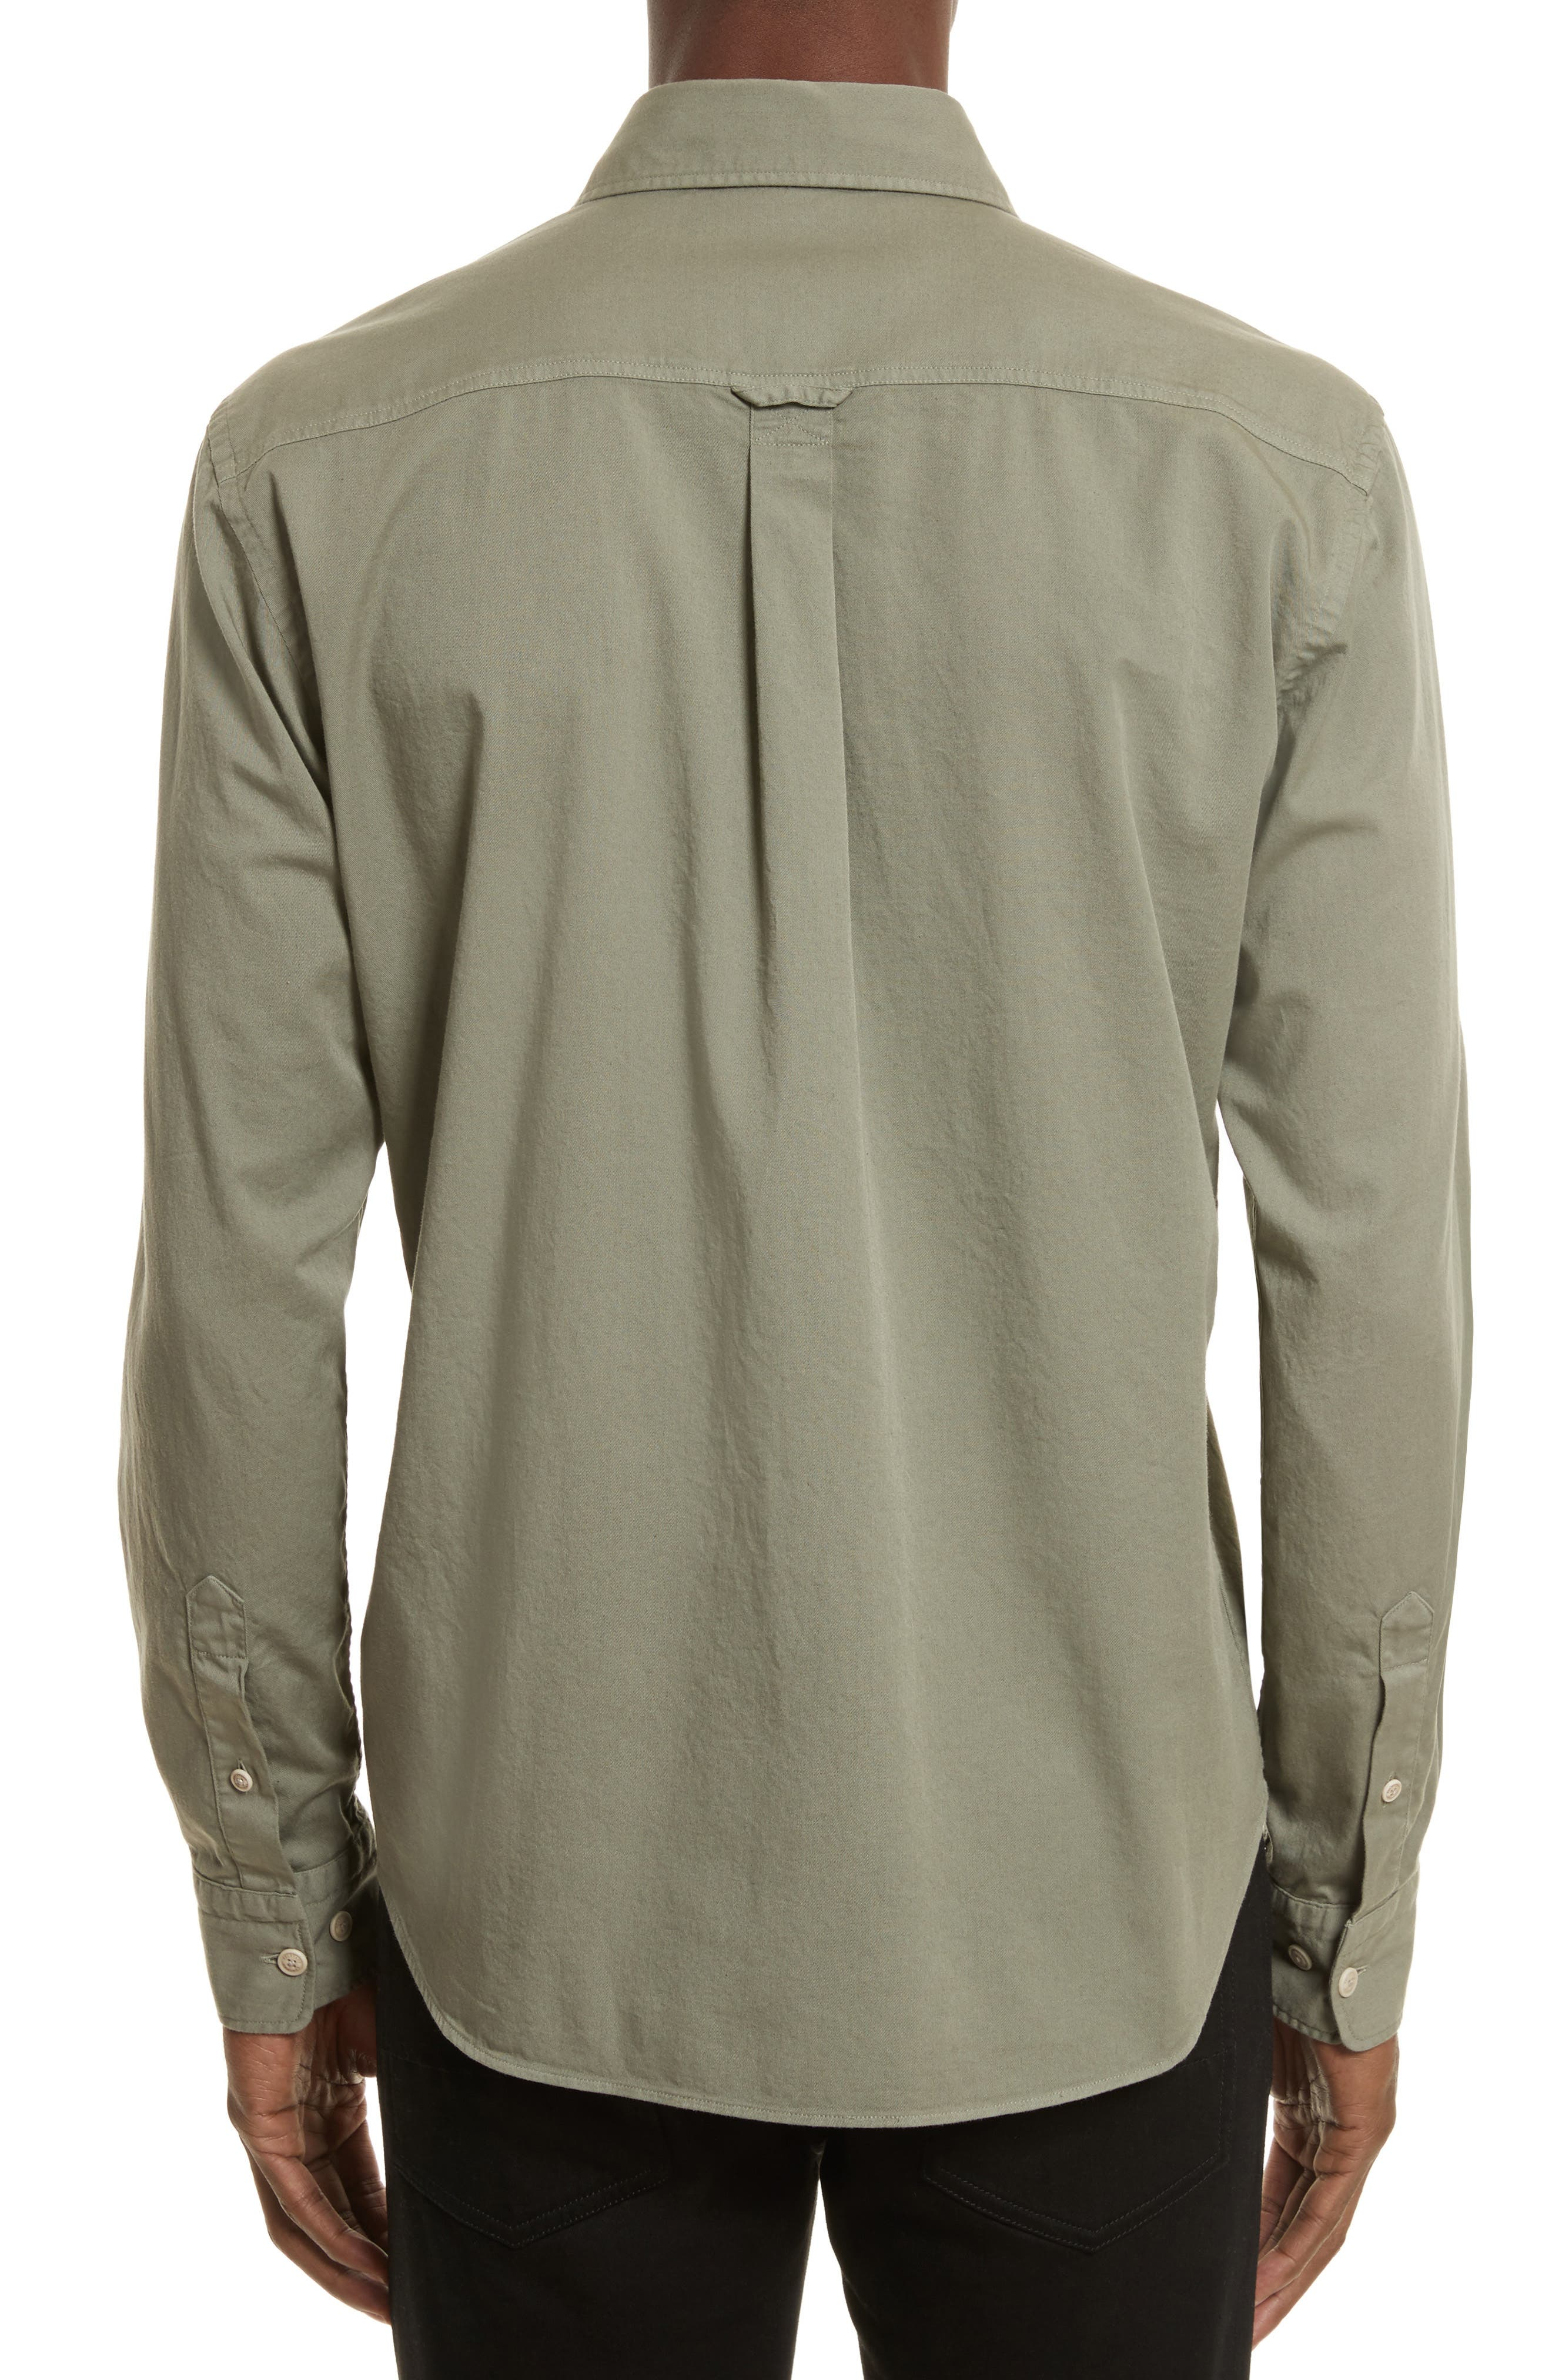 Steadway Extra Slim Fit Sport Shirt,                             Alternate thumbnail 2, color,                             033